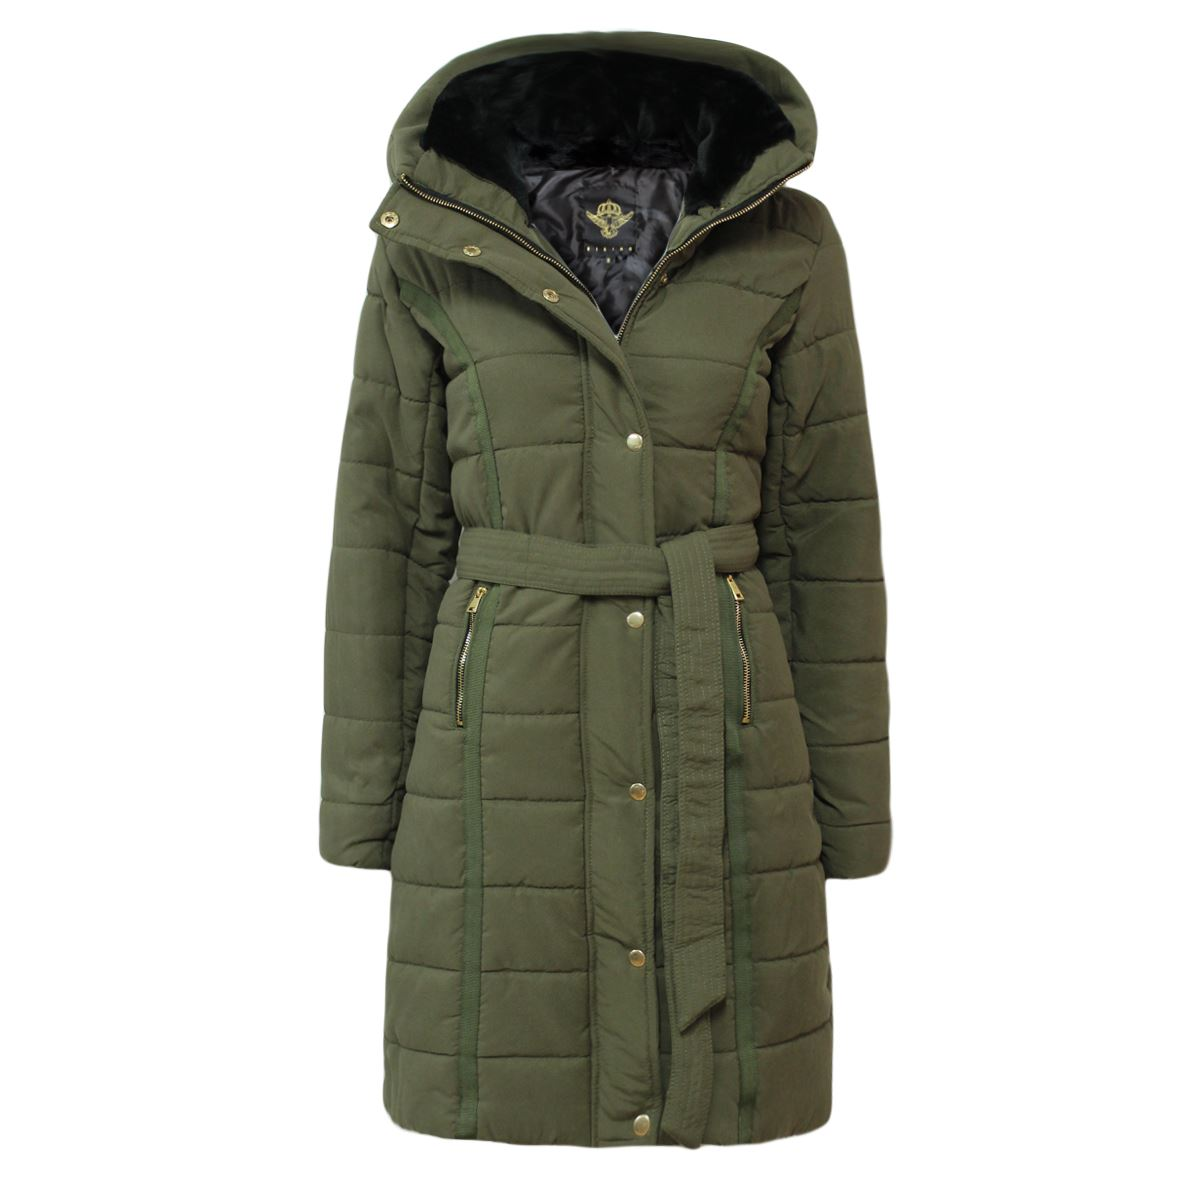 Shop for Women's Quilted & Puffa Jackets from our Outerwear range at John Lewis. Free delivery on orders over £